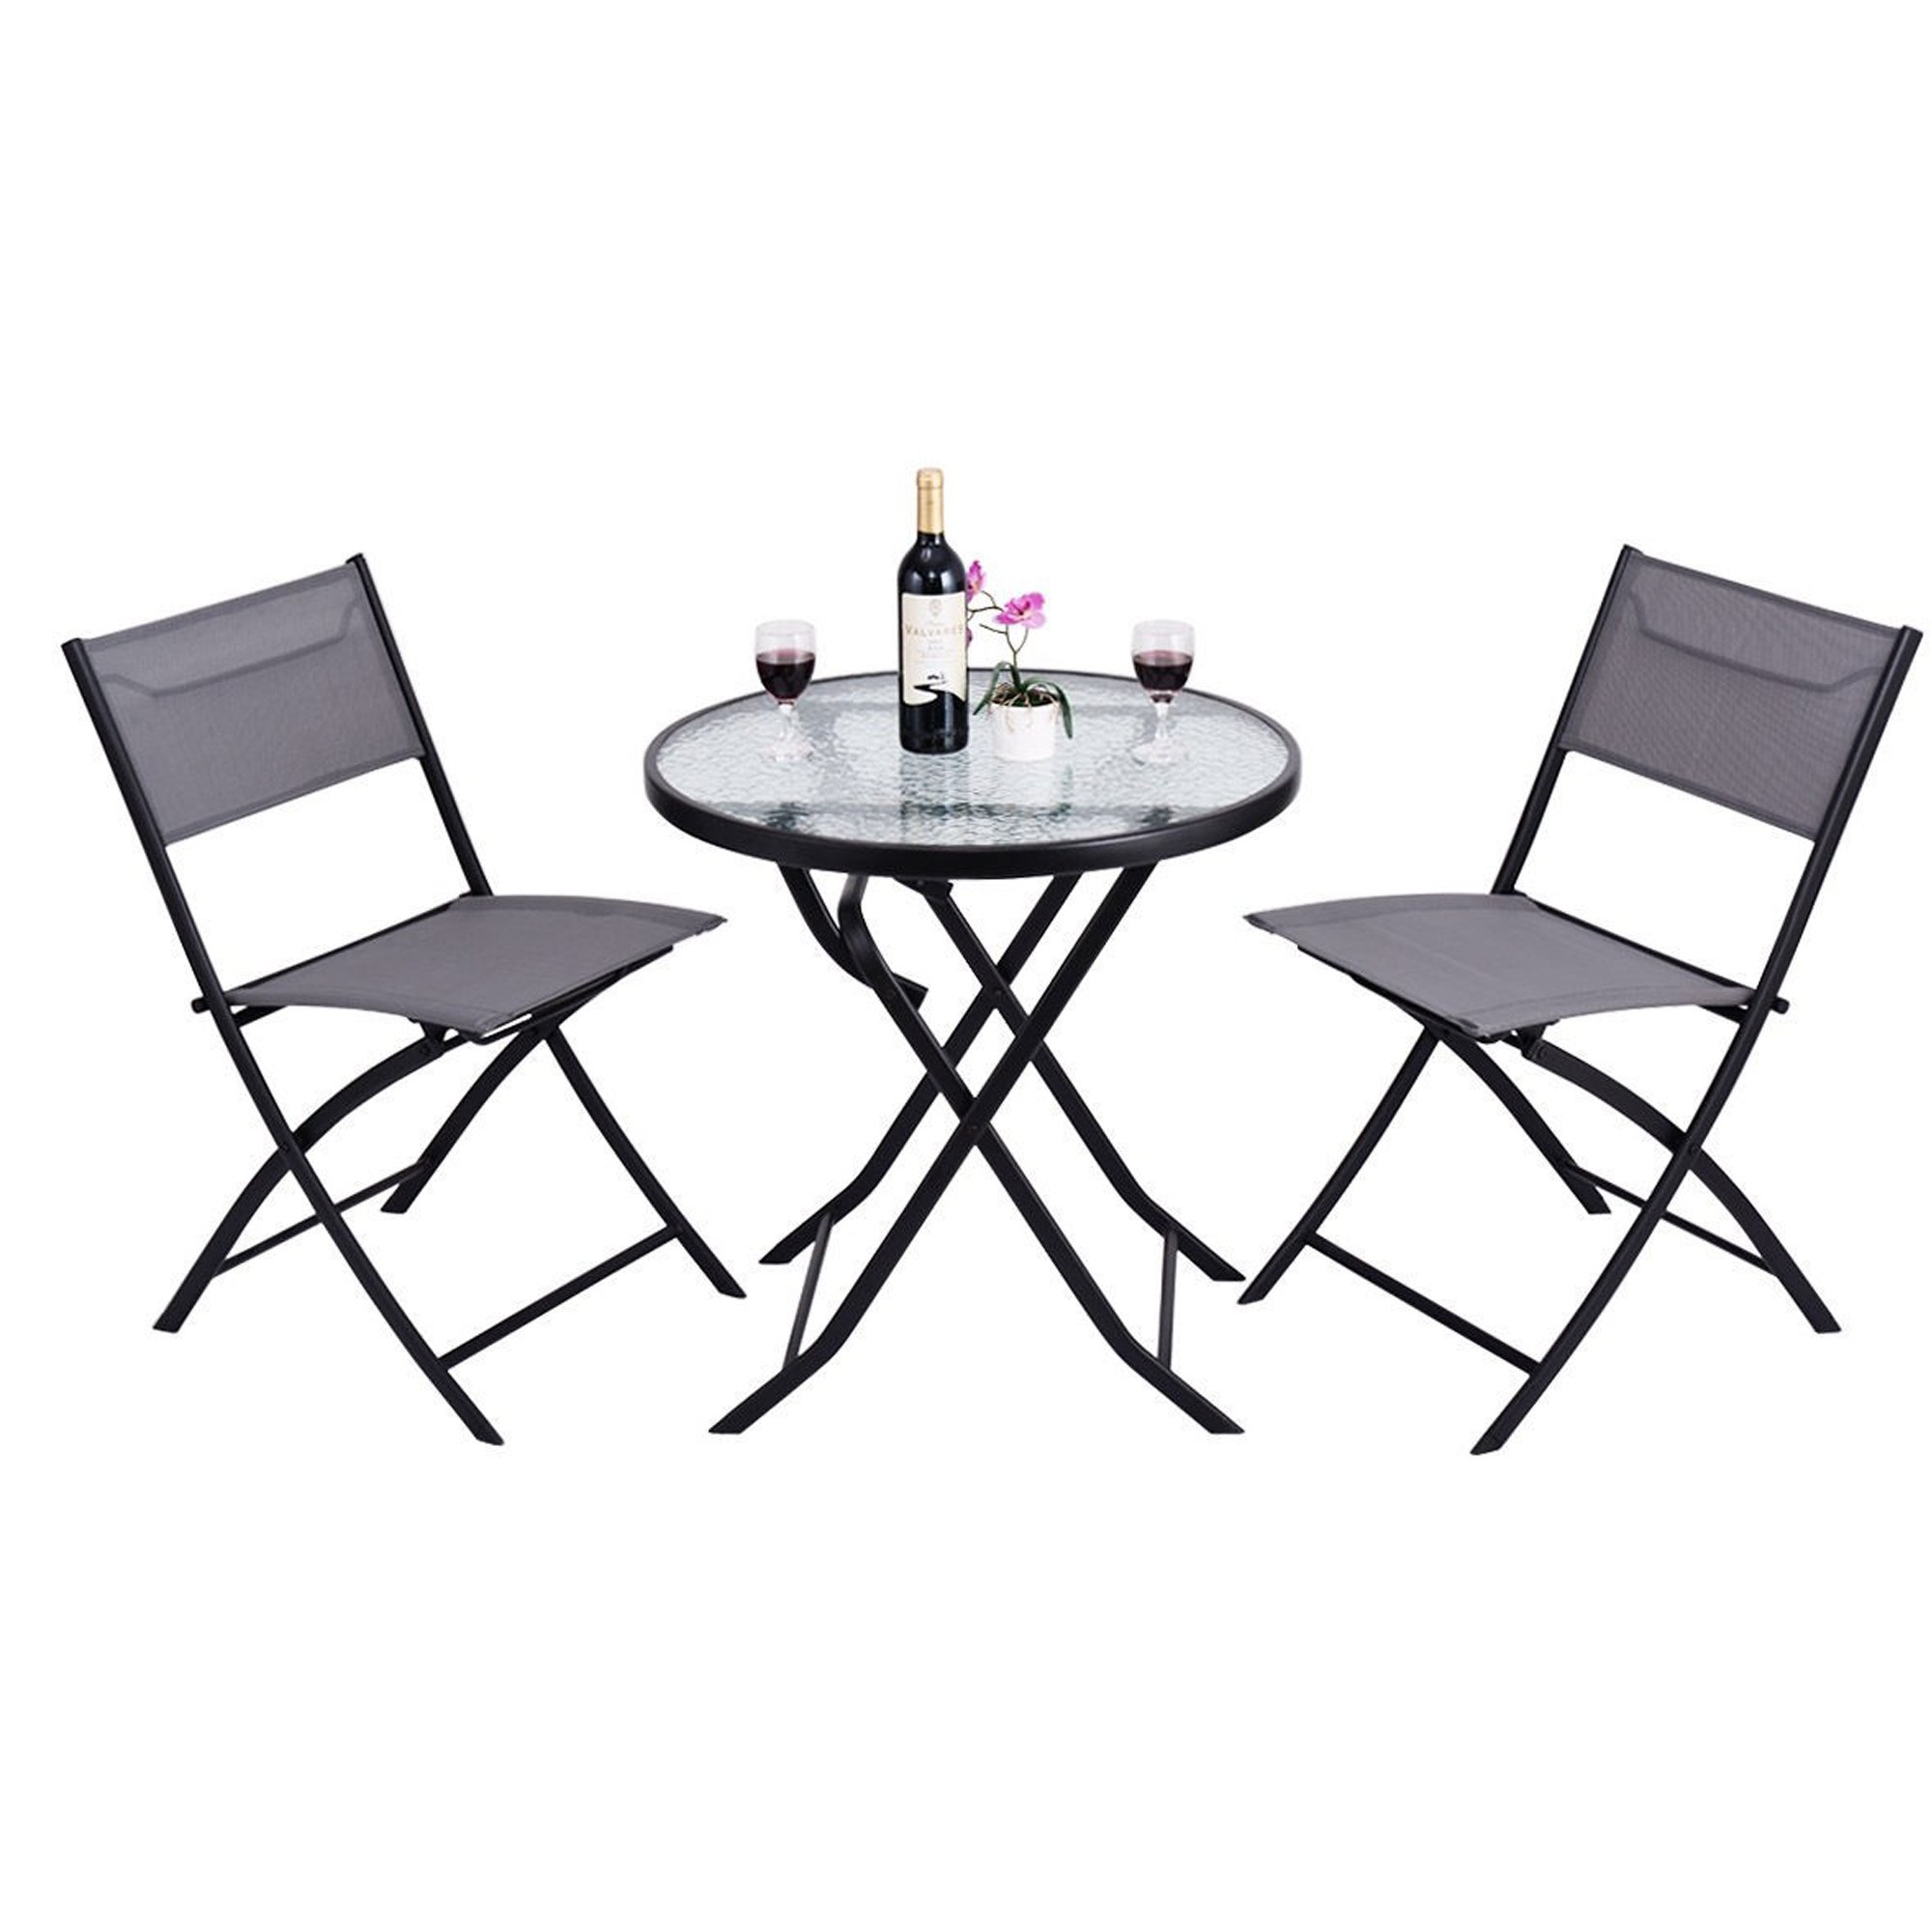 Outdoor Patio Furniture Bistro Set - 3 Pieces Outside Foldable Portable Conversation Sets W/ 2 Chairs & Table - Modern Seating Design Perfect For A Cafe Pub Garden Front Porch Yard Lawn Balcony